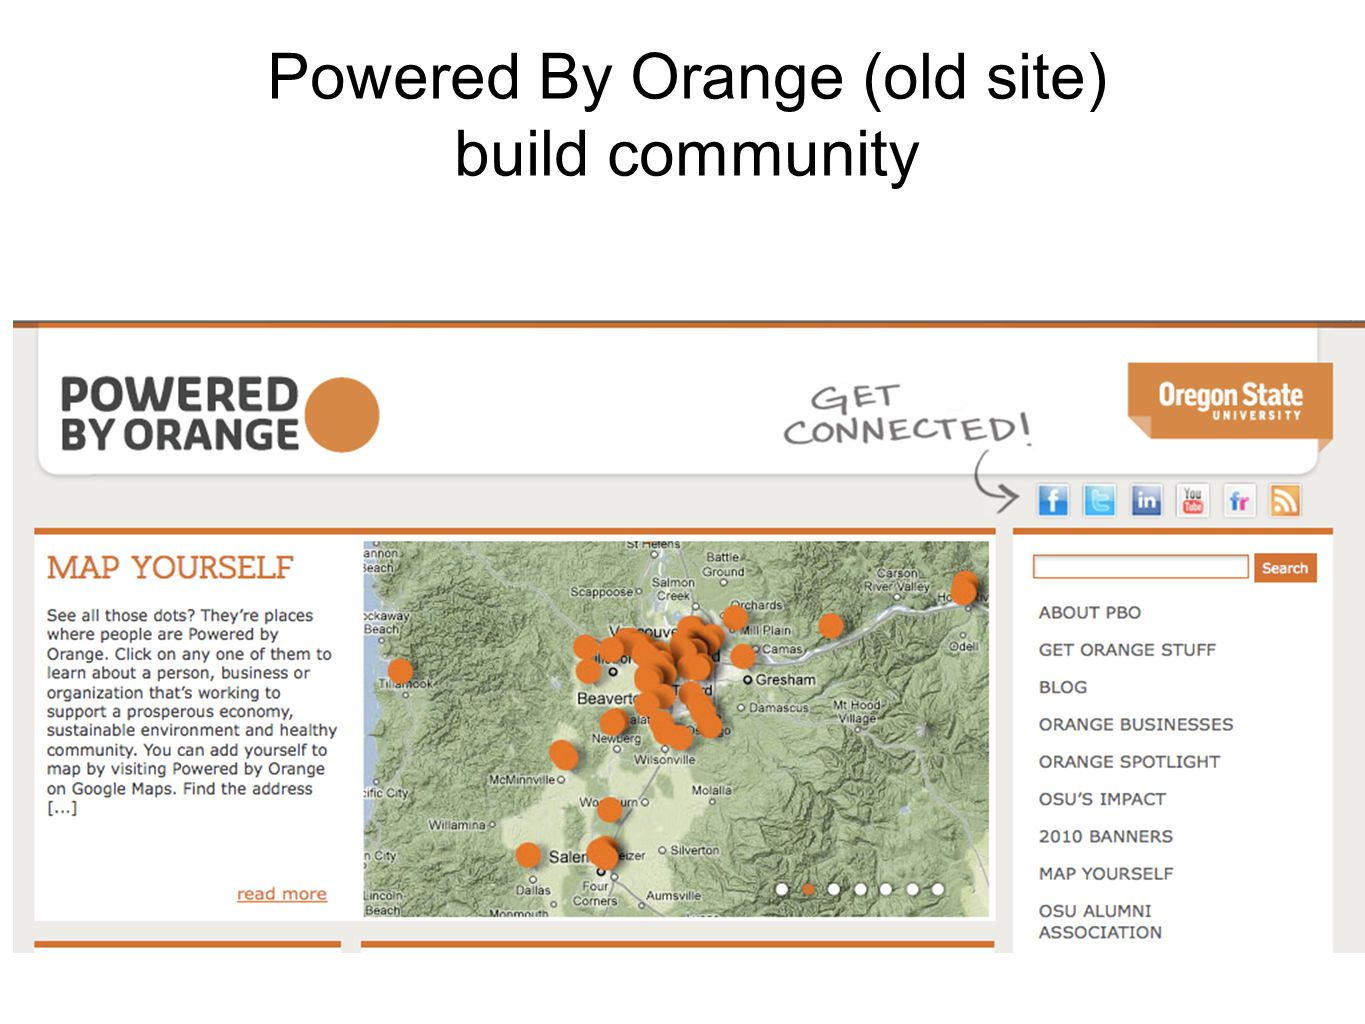 Powered By Orange (old site) build community